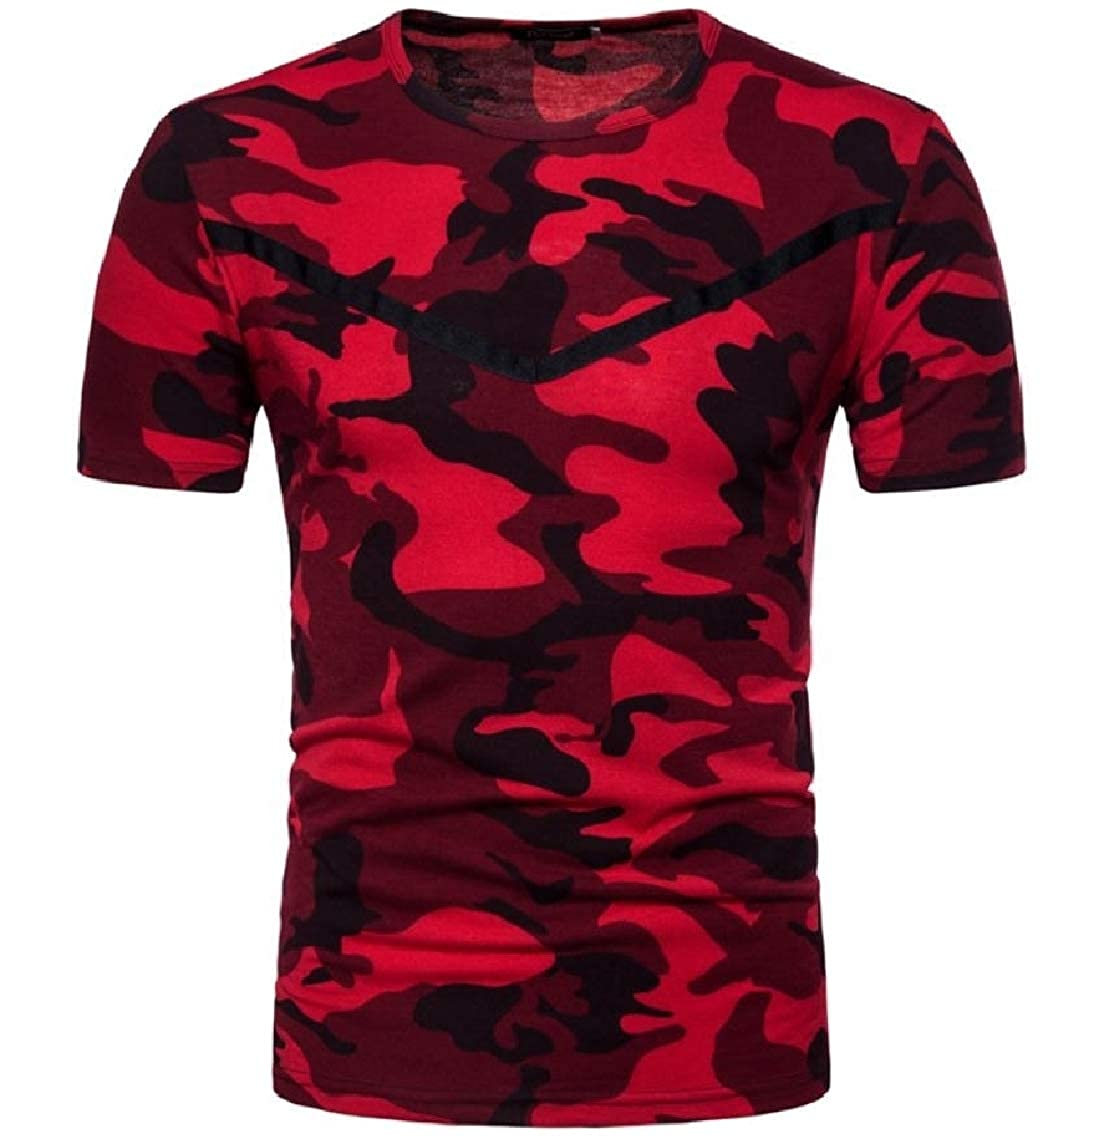 Mfasica Men Short Sleeve Crew Neck Camouflage Color Printing Pullover Tees Top